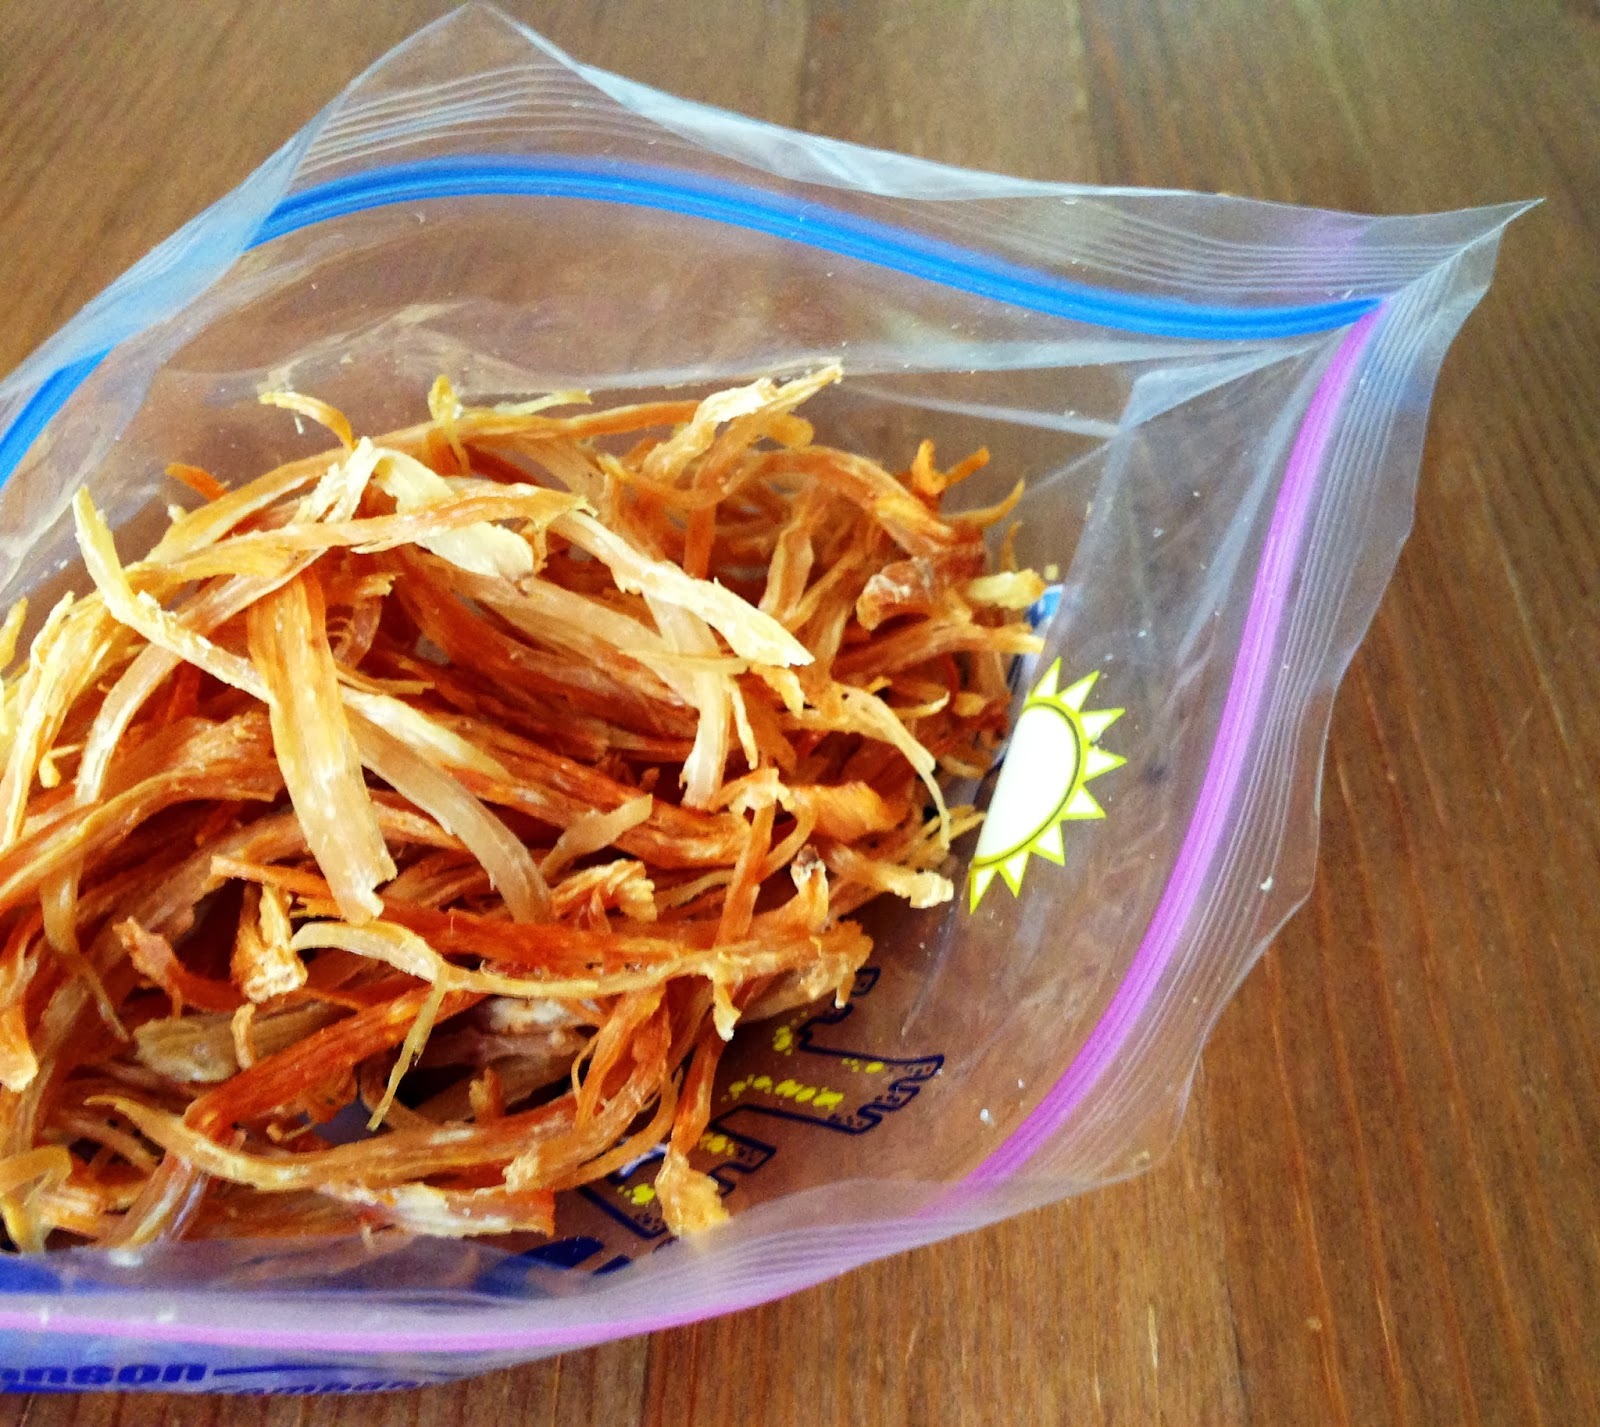 Shredded Chicken Crisps